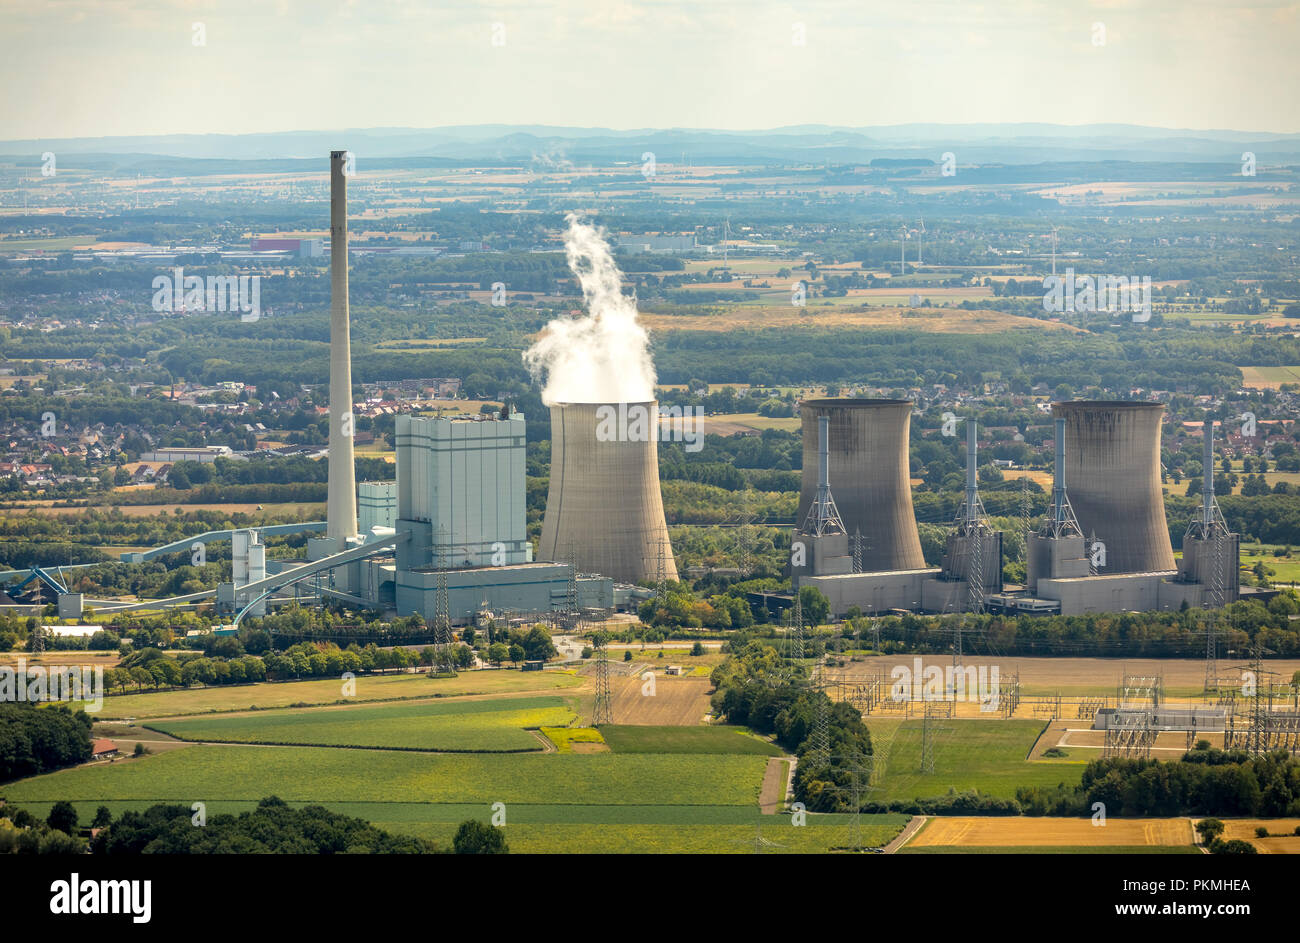 Aerial view, Gersteinwerk, combined steam power plant coal and natural gas, RWE AG in the Werner district Stockum - Stock Image